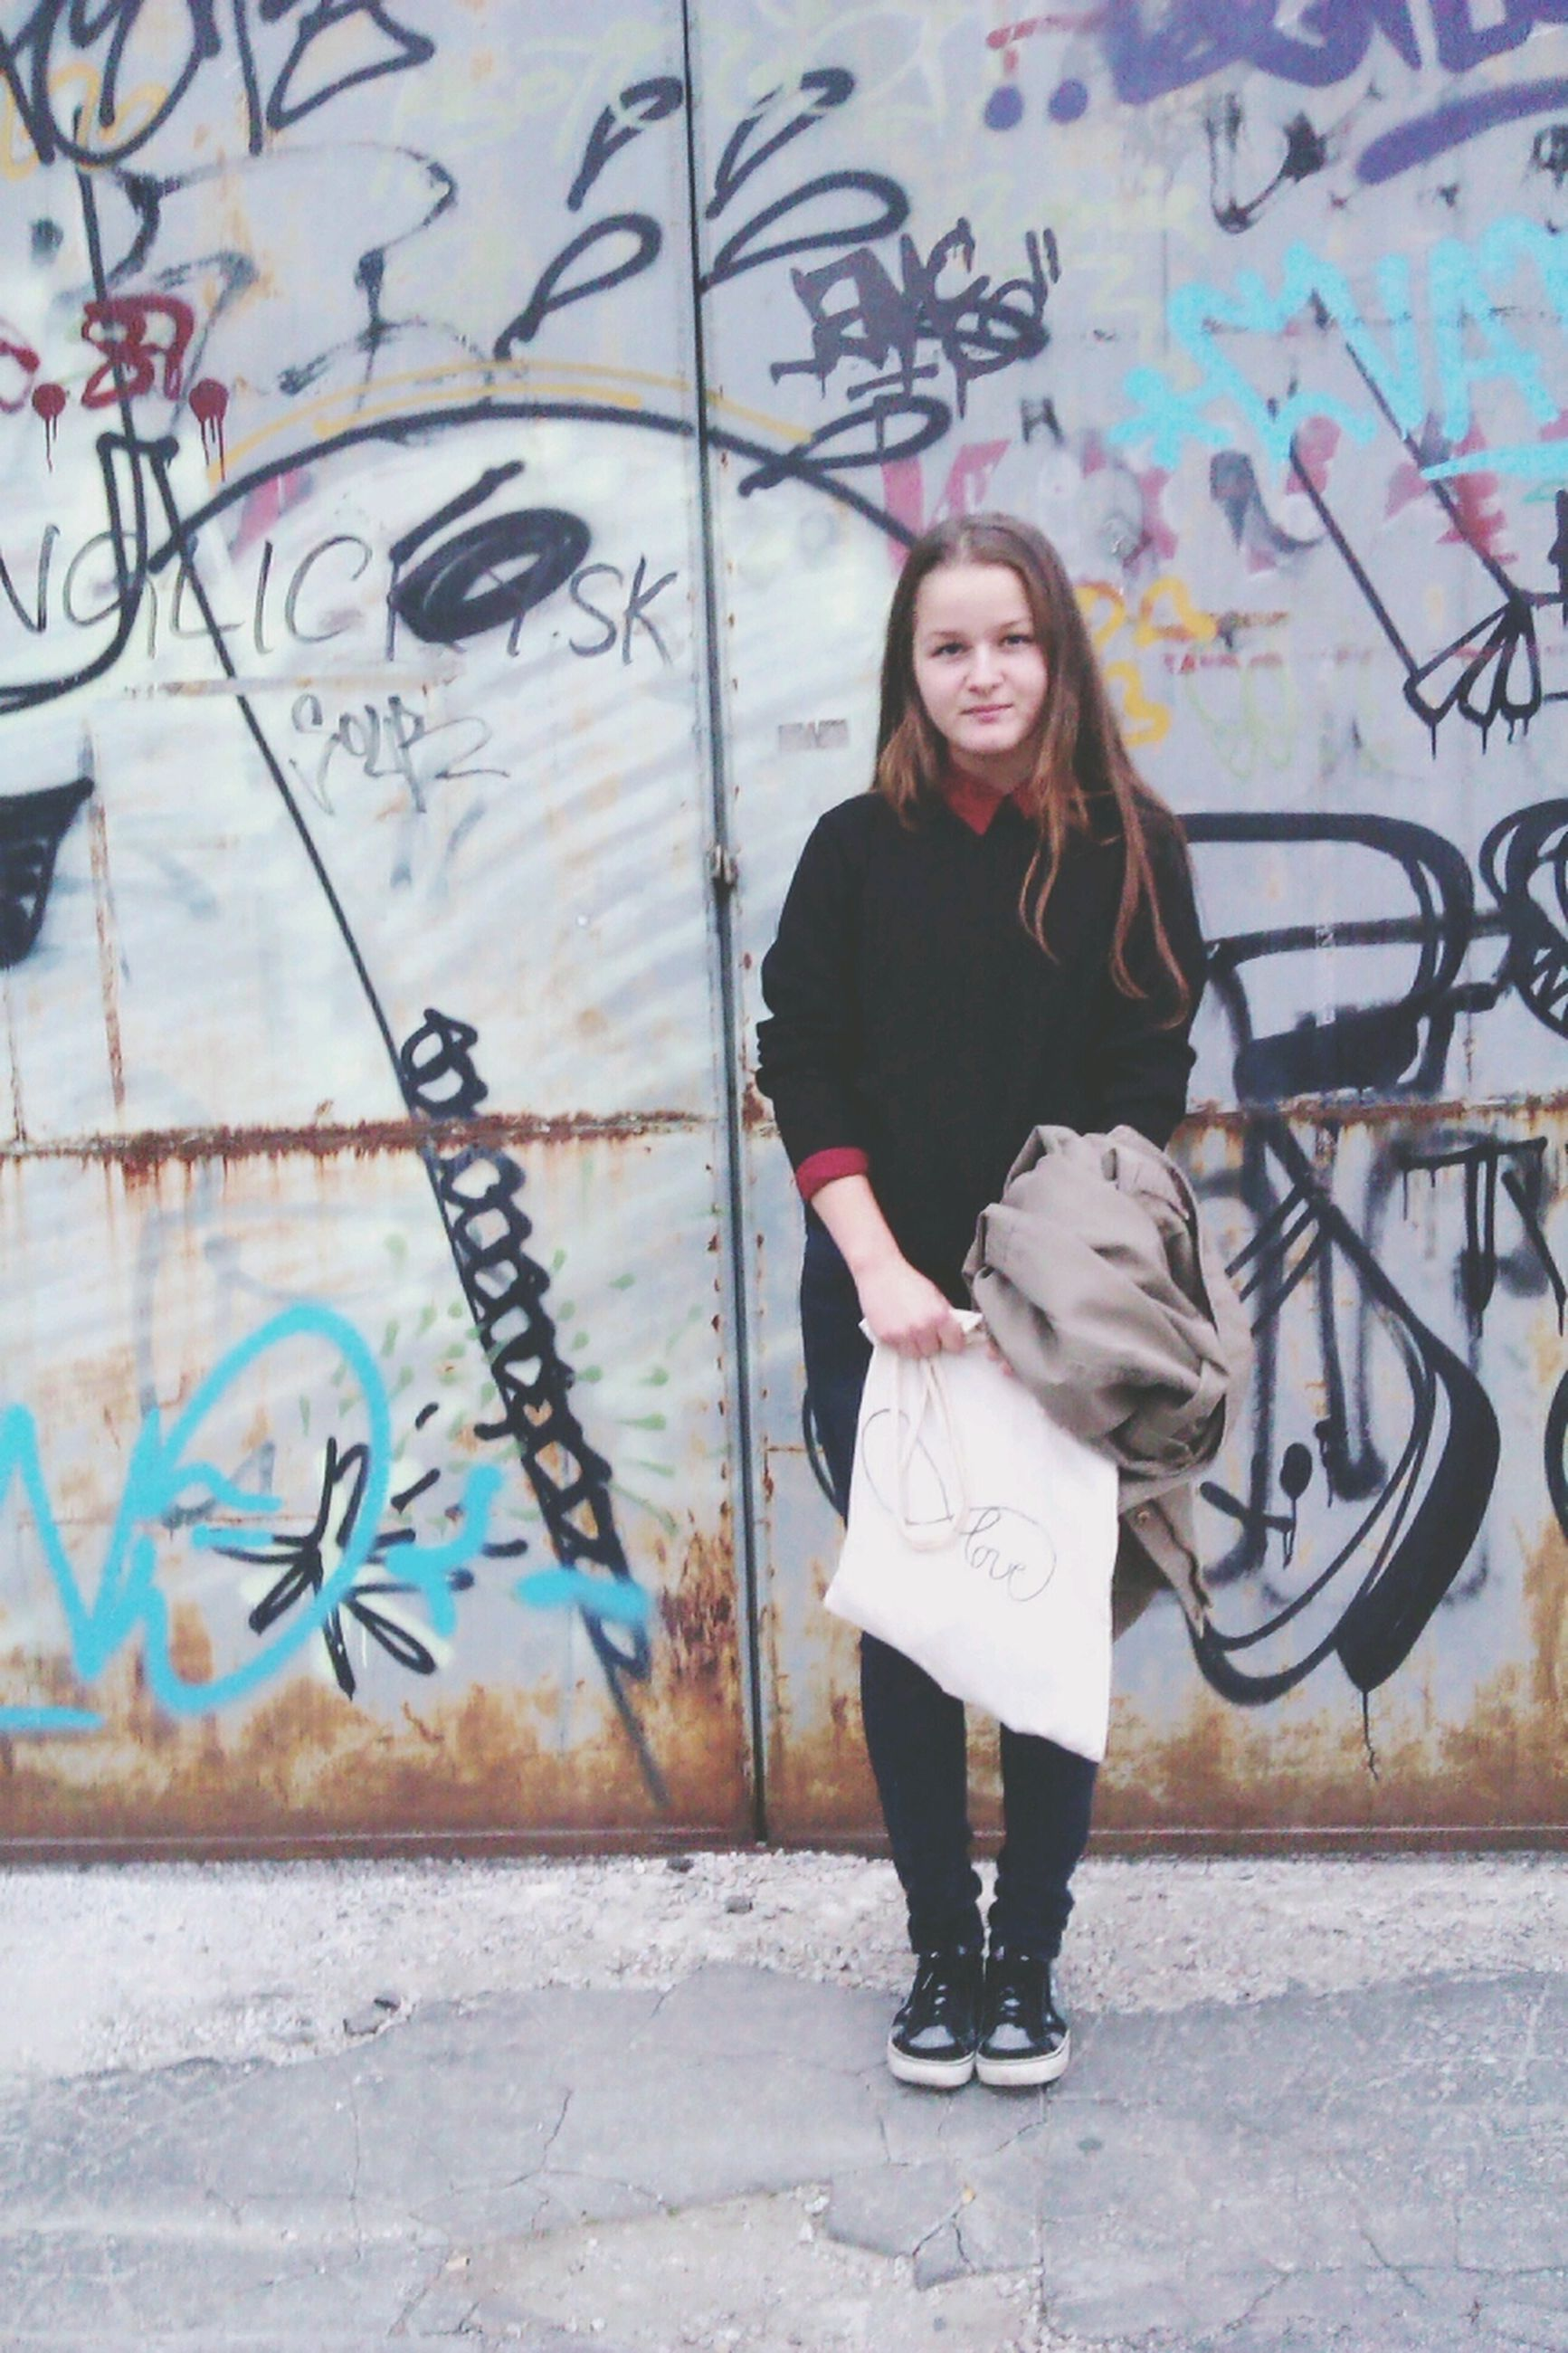 lifestyles, casual clothing, young adult, standing, young women, front view, full length, leisure activity, graffiti, person, looking at camera, wall - building feature, portrait, long hair, built structure, three quarter length, smiling